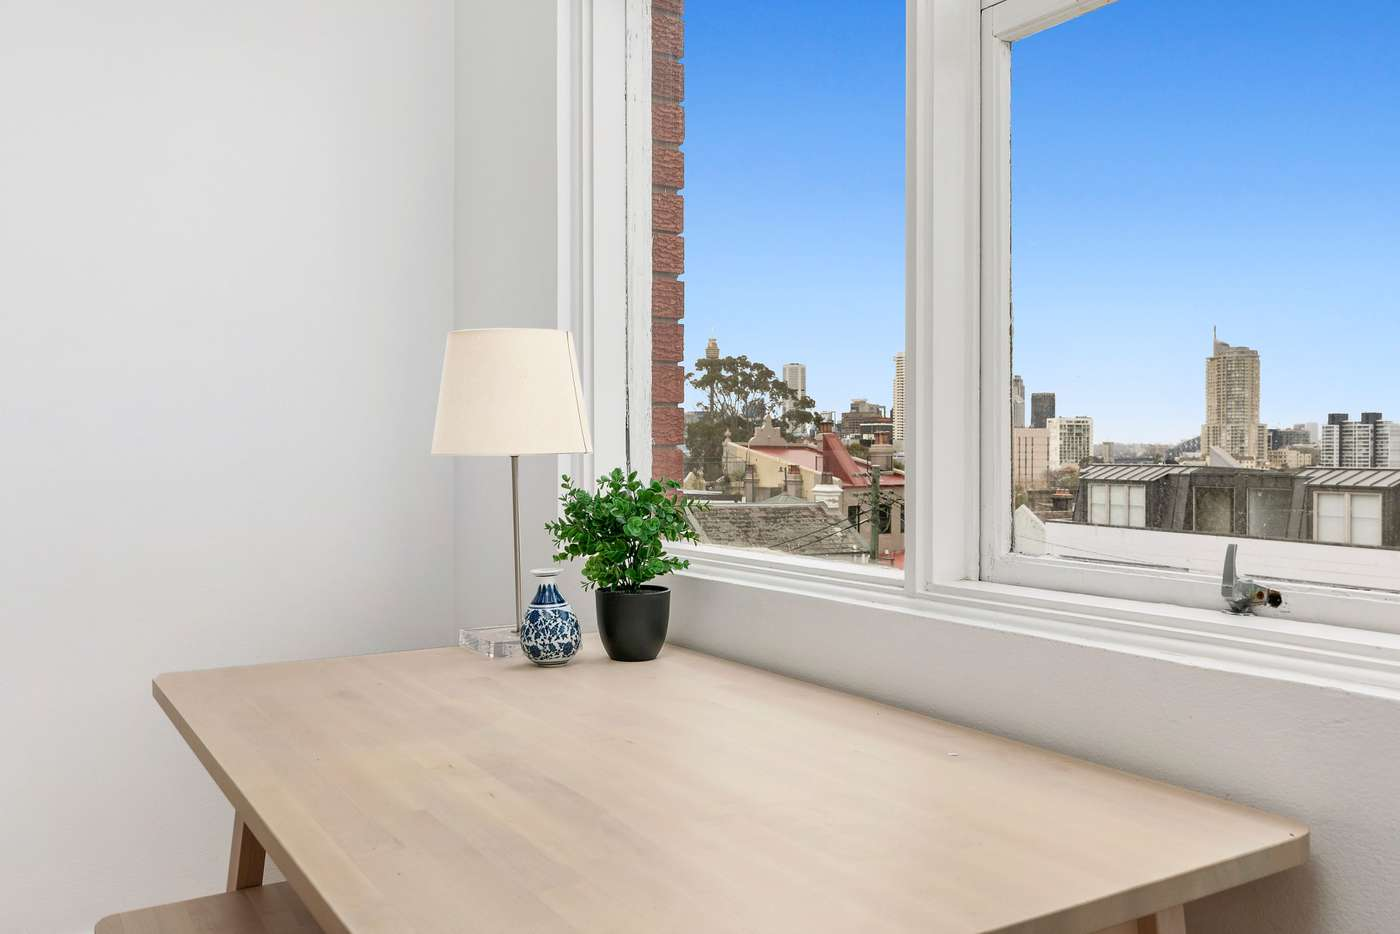 Main view of Homely apartment listing, 24/6 Underwood Street, Paddington NSW 2021